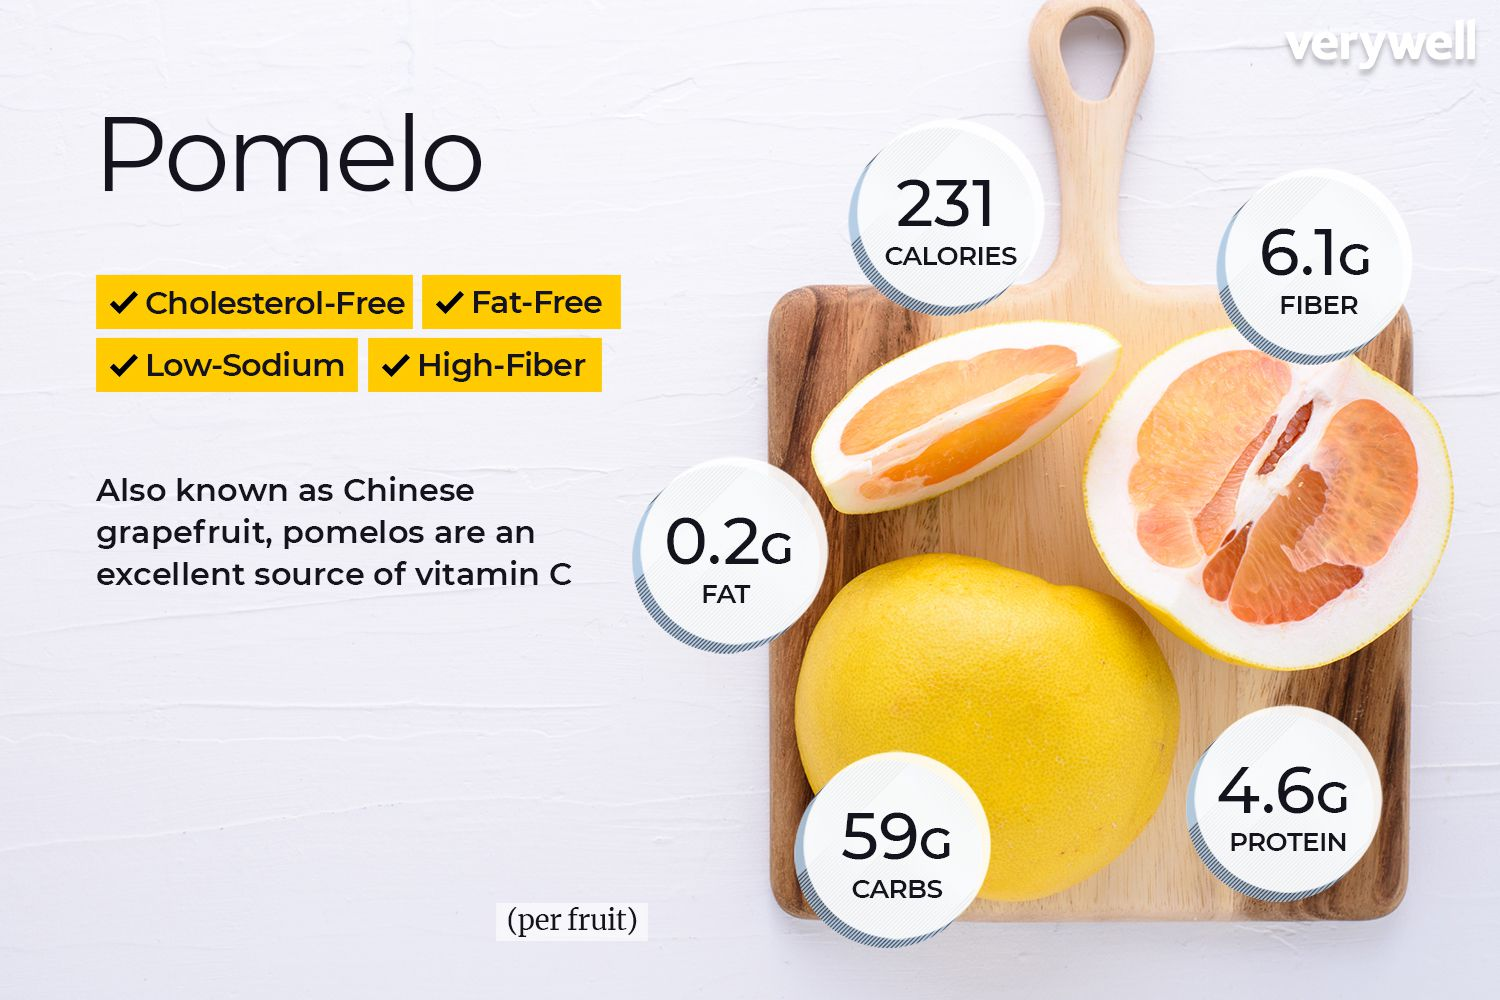 Pomelo Nutrition Facts And Health Benefits